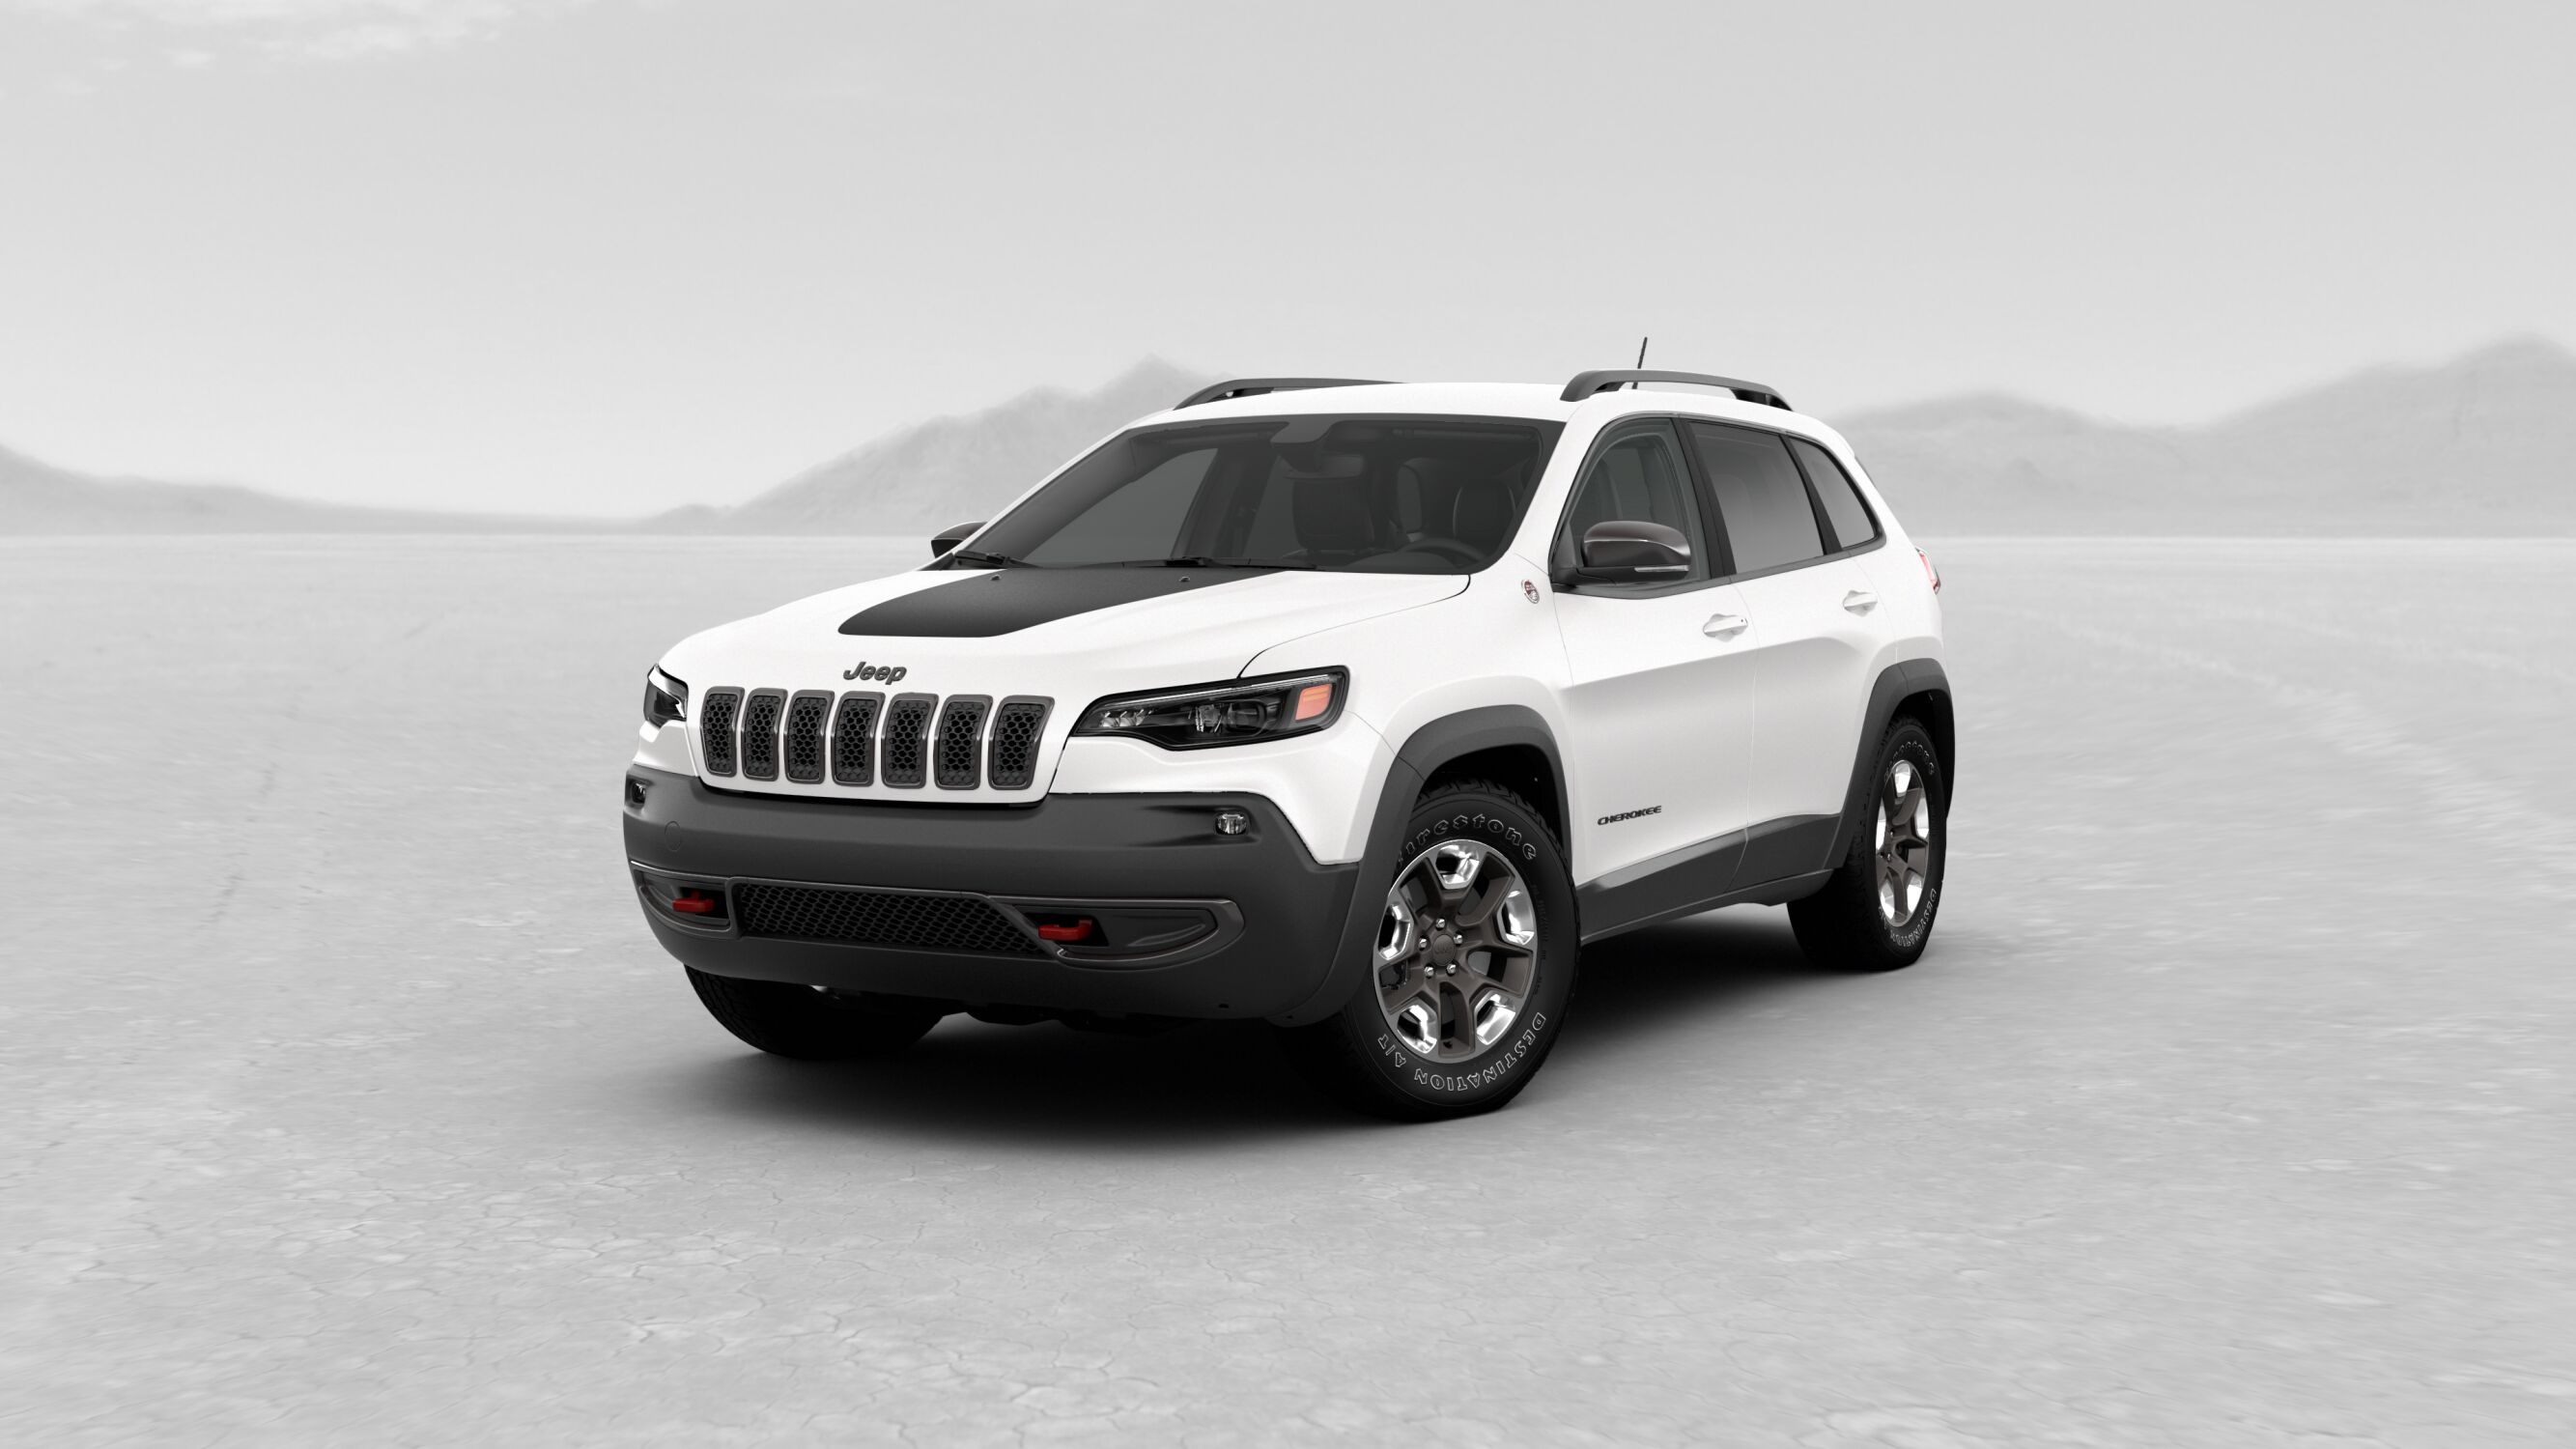 2019 Jeep Cherokee Pearl White Exterior Color o Akins Dodge